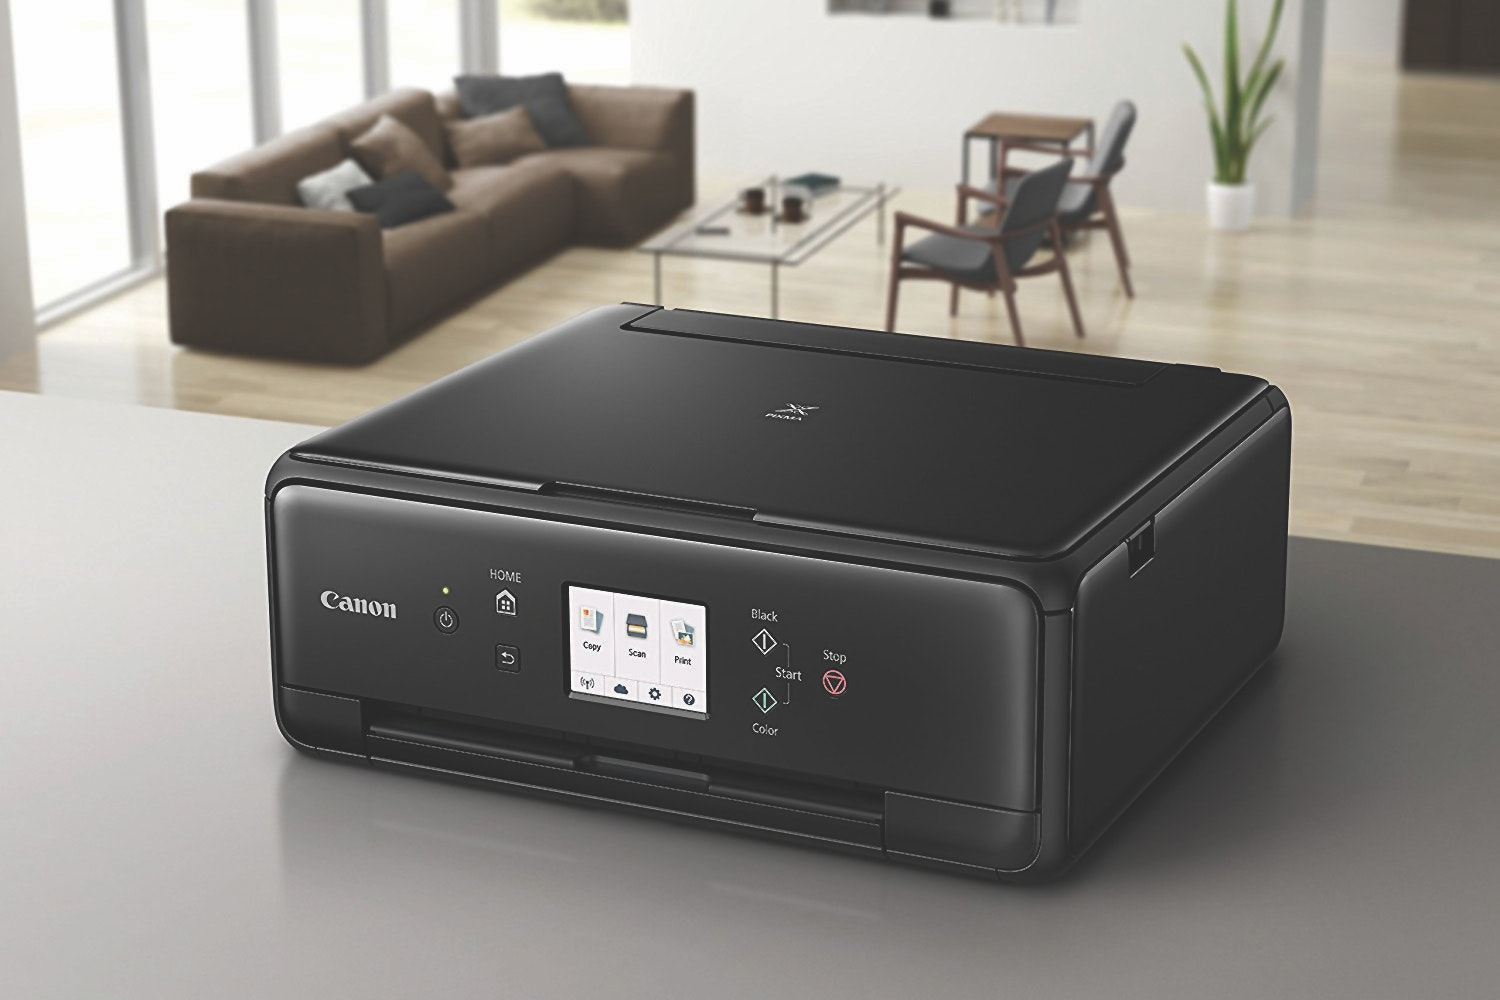 Canon Pixma TS6150 All In One Inkjet Printer | Black